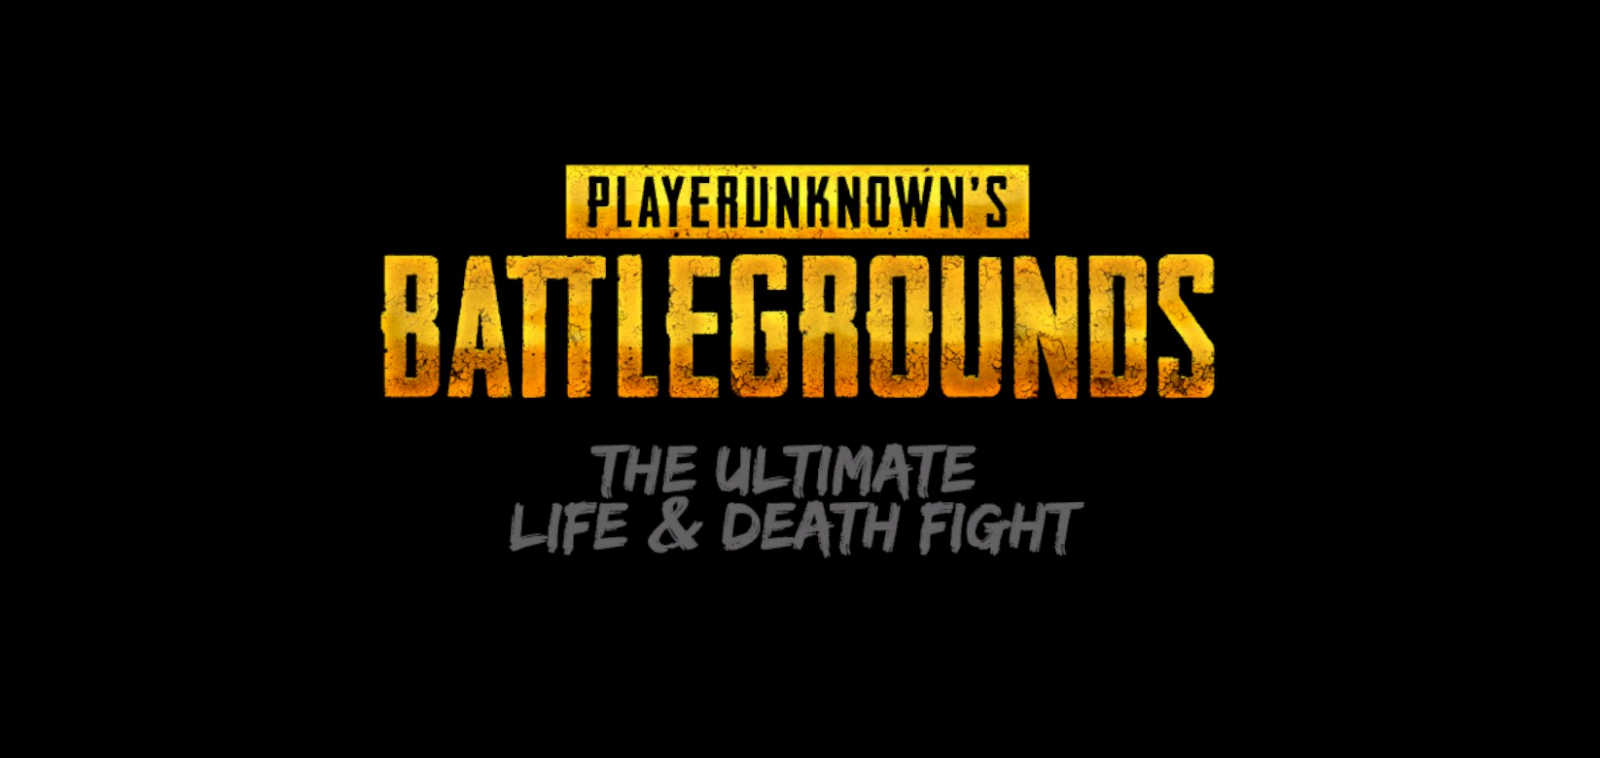 Pubg Logo Black: PLAYERUNKNOWN'S BATTLEGROUNDS Backgrounds, Pictures, Images